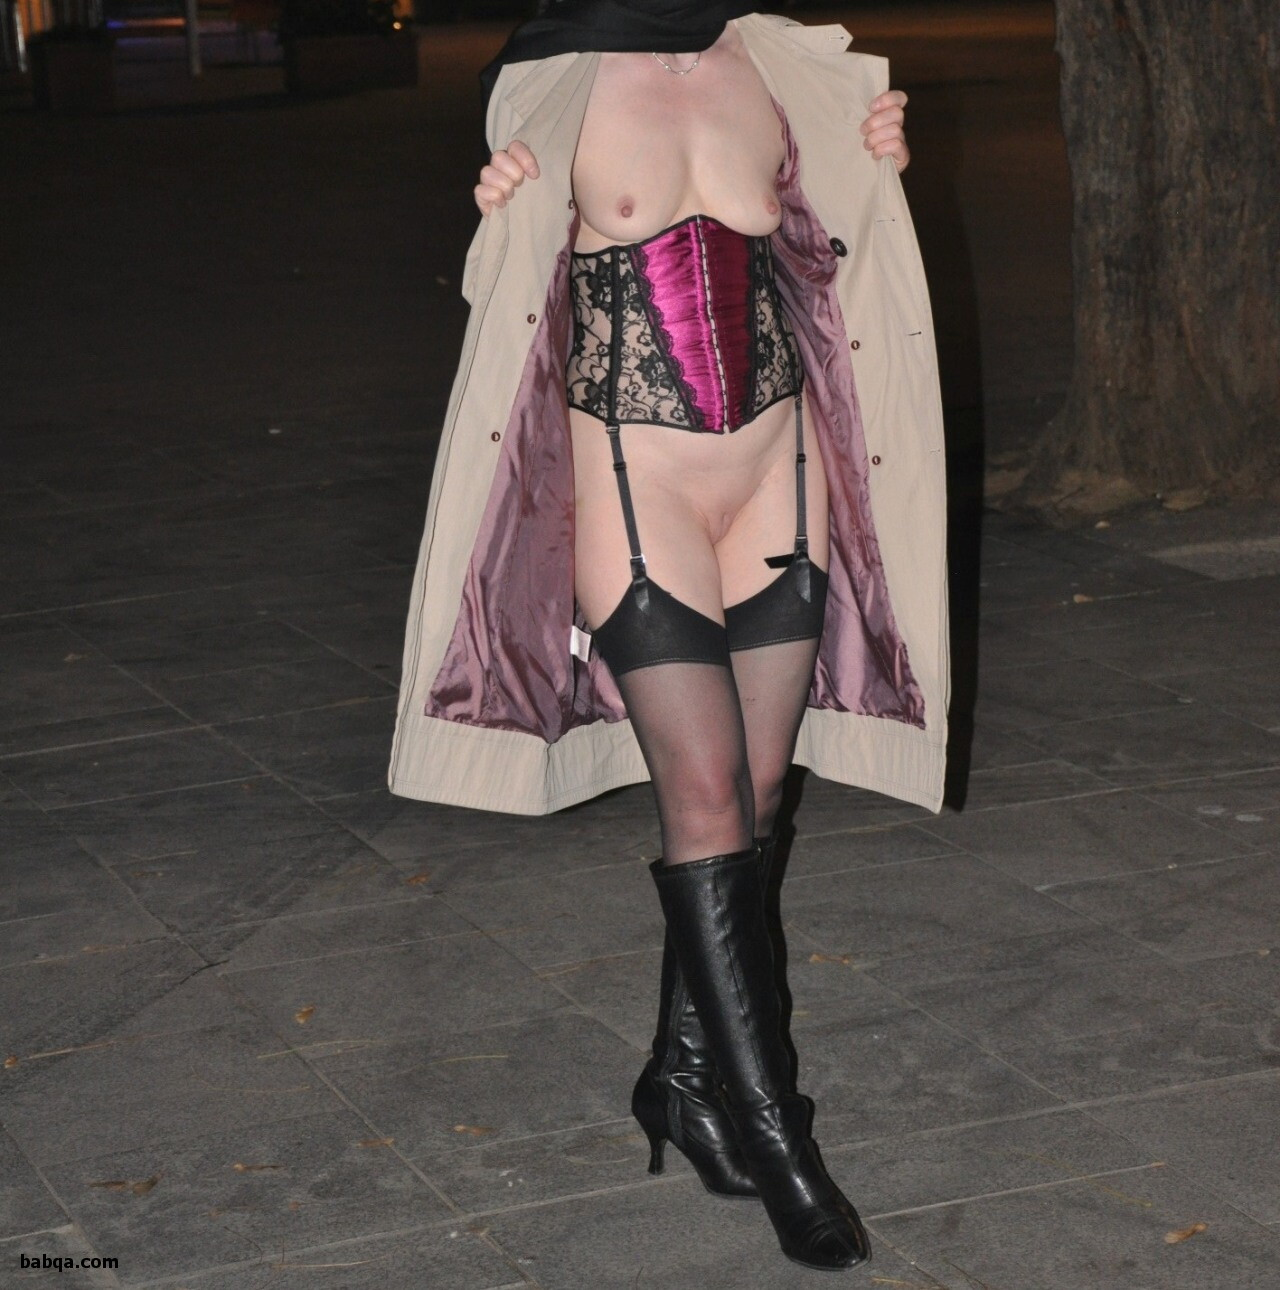 fairy fishnet tights and plus size garter belt and stockings